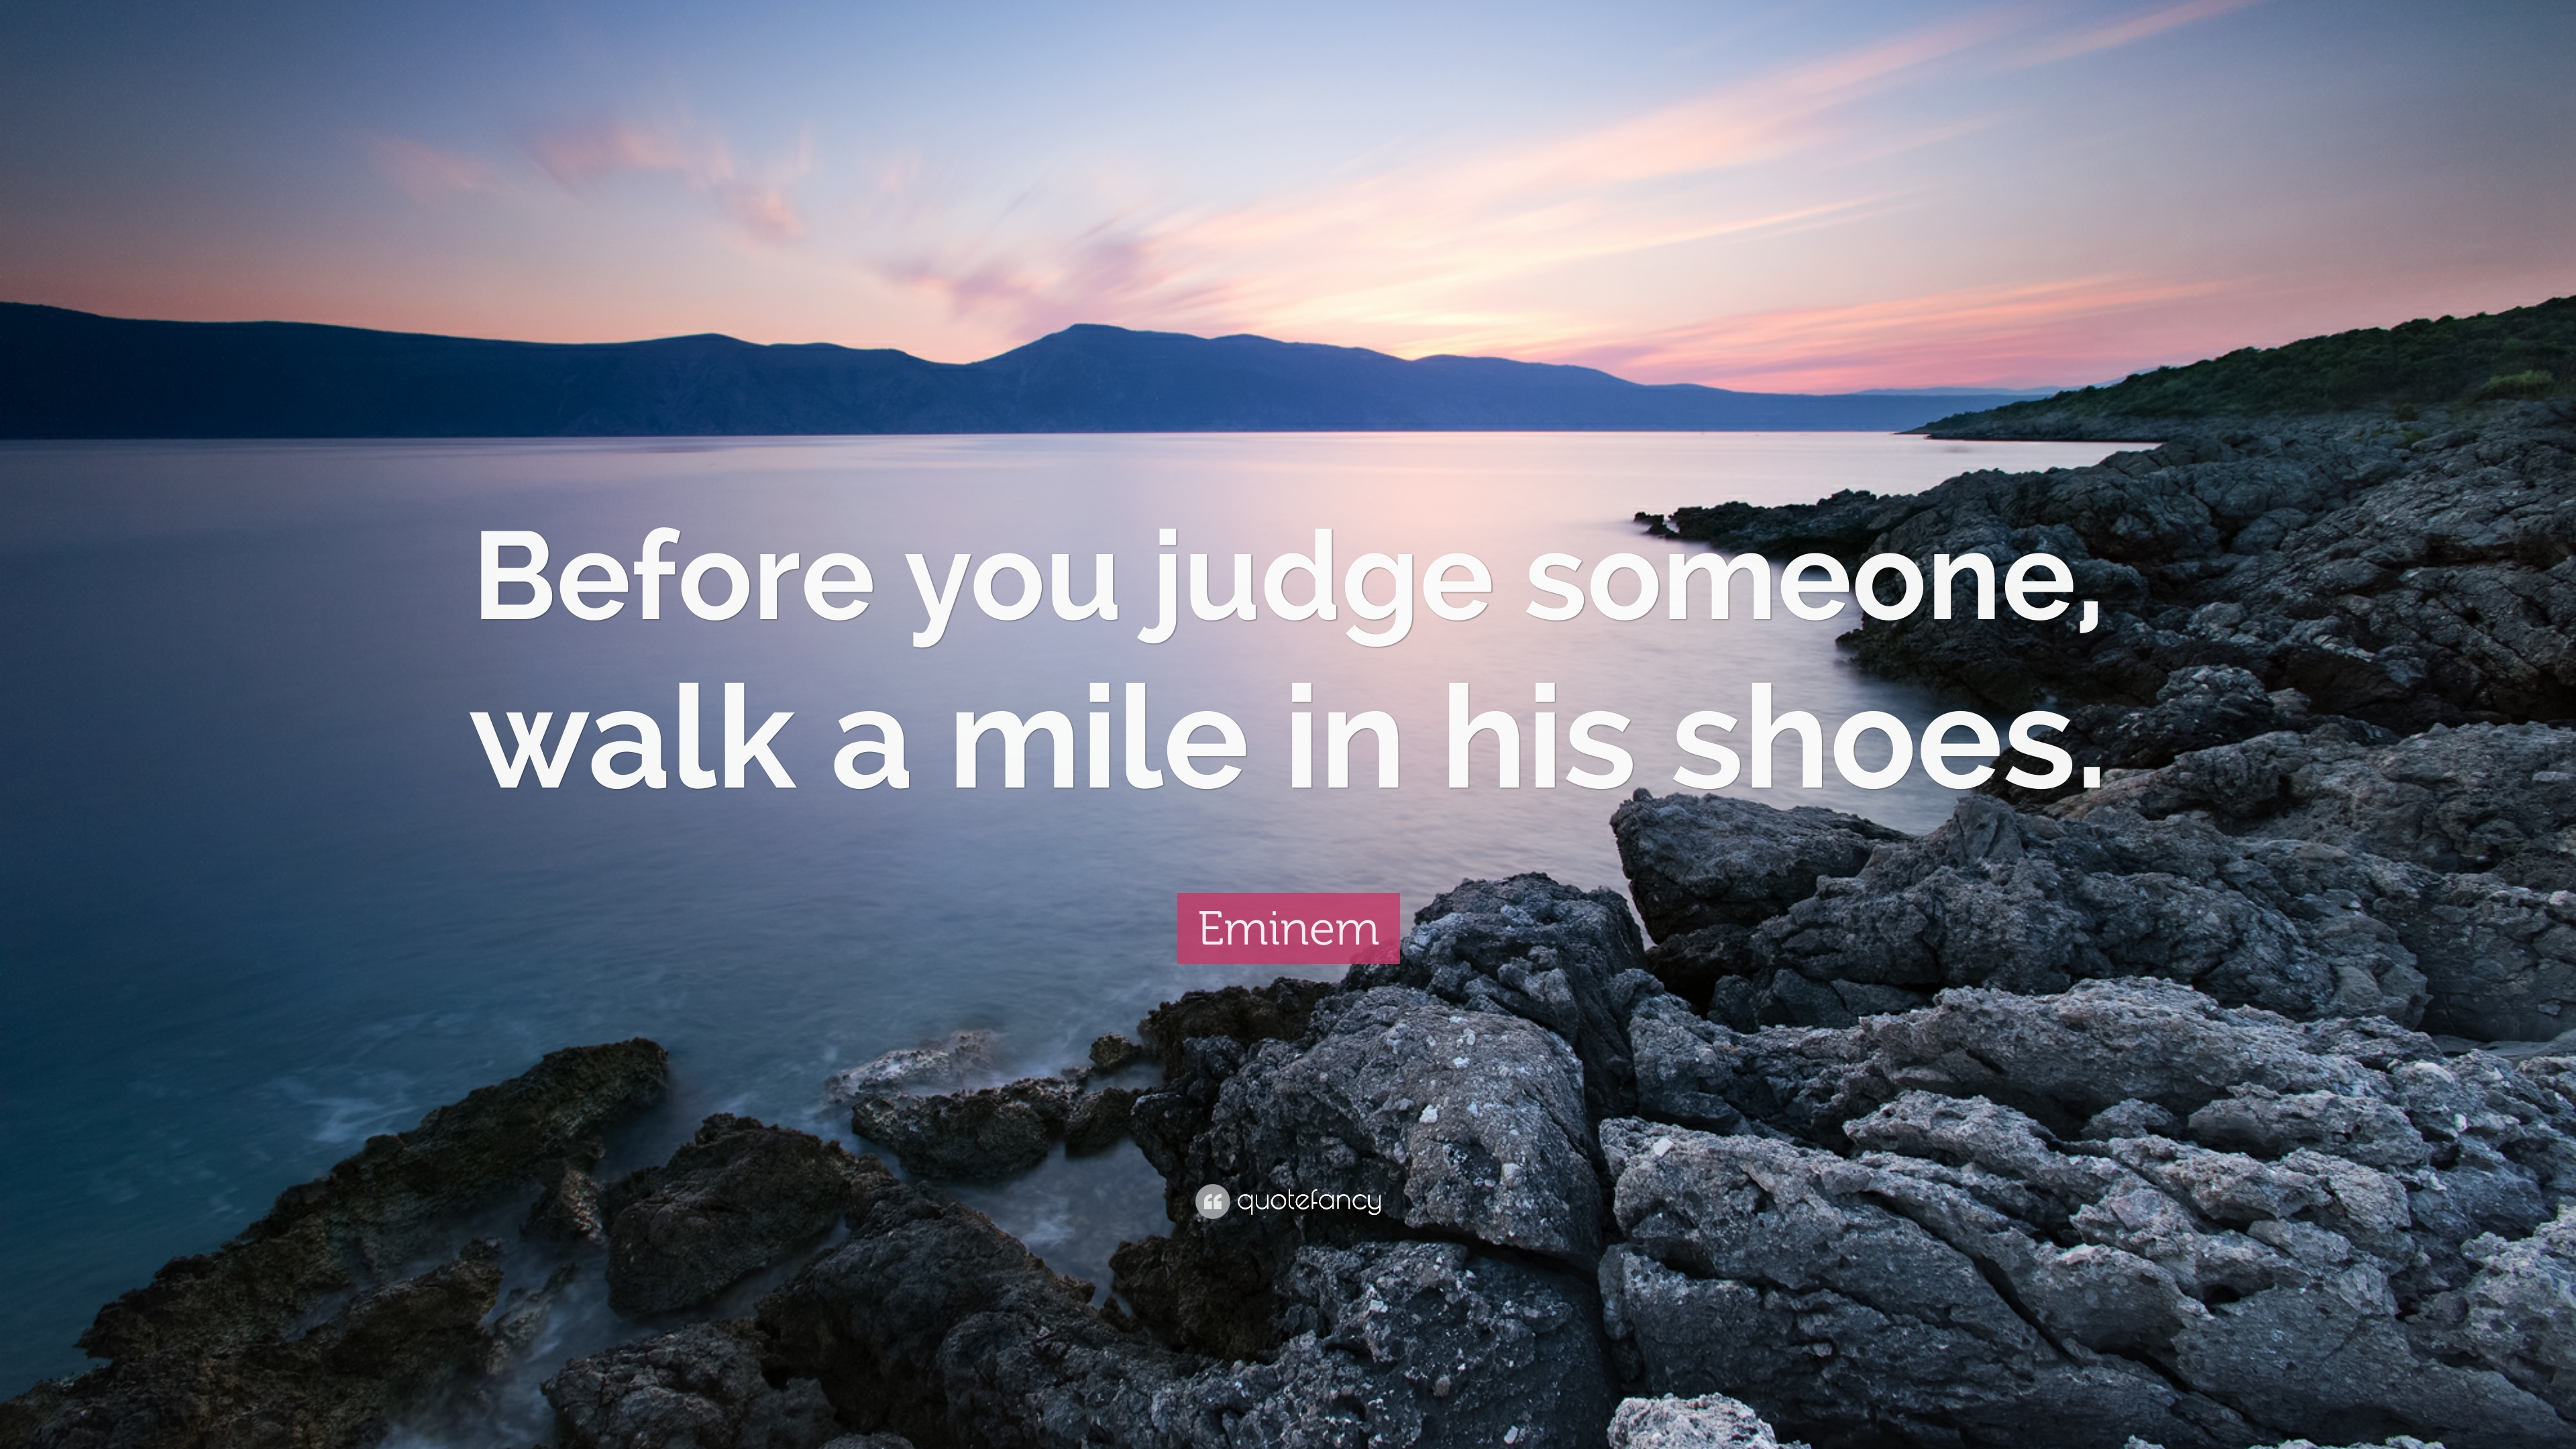 Eminem Quote Before You Judge Someone Walk A Mile In His Shoes